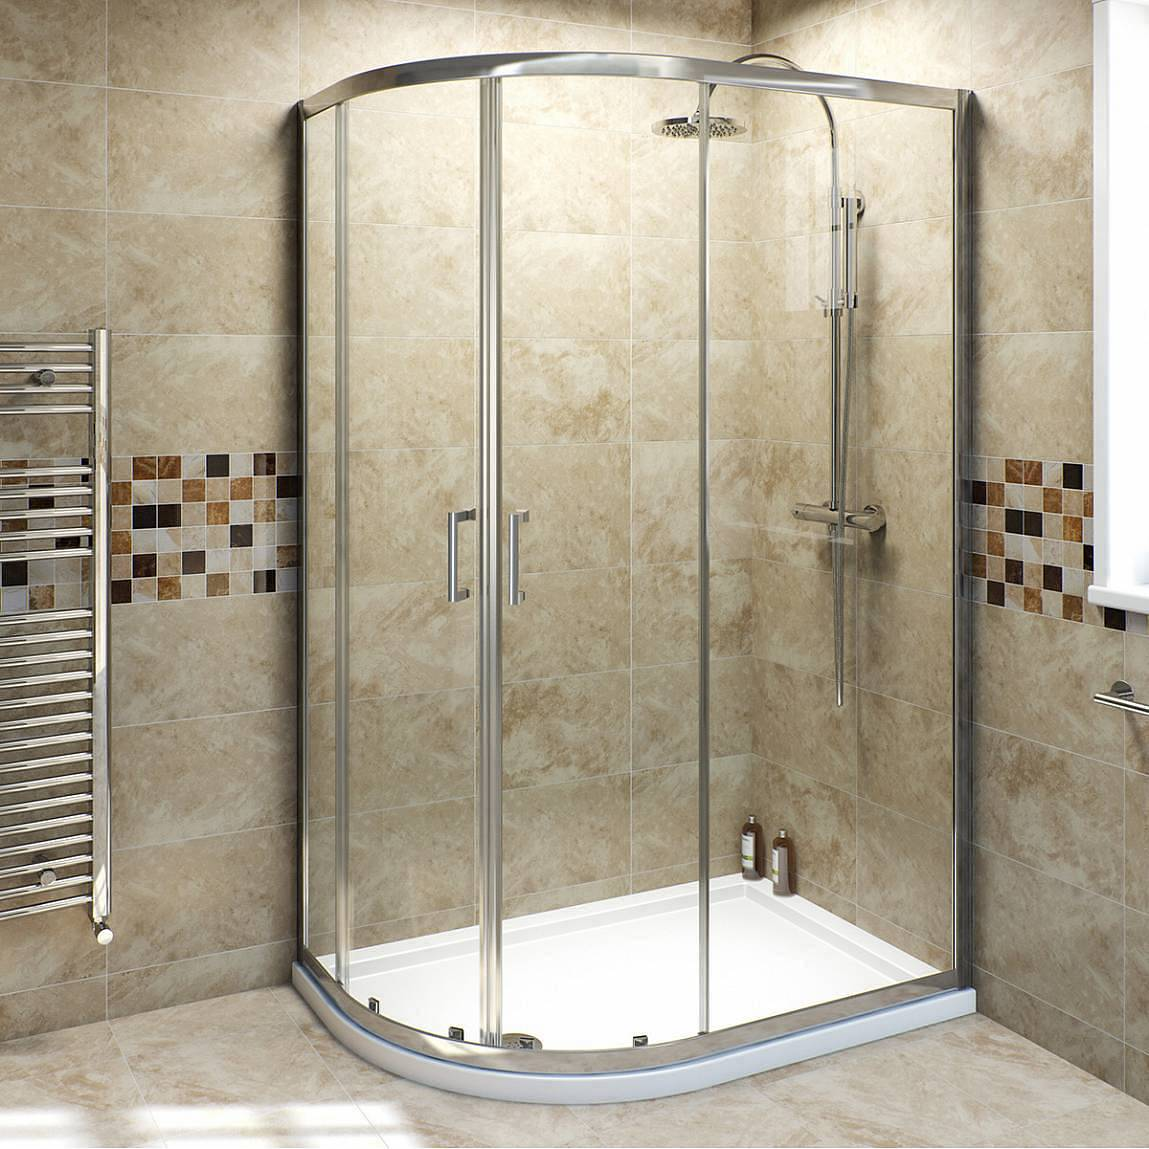 Image of V6 6mm Quadrant Offset Shower Enclosure 1000 x 800